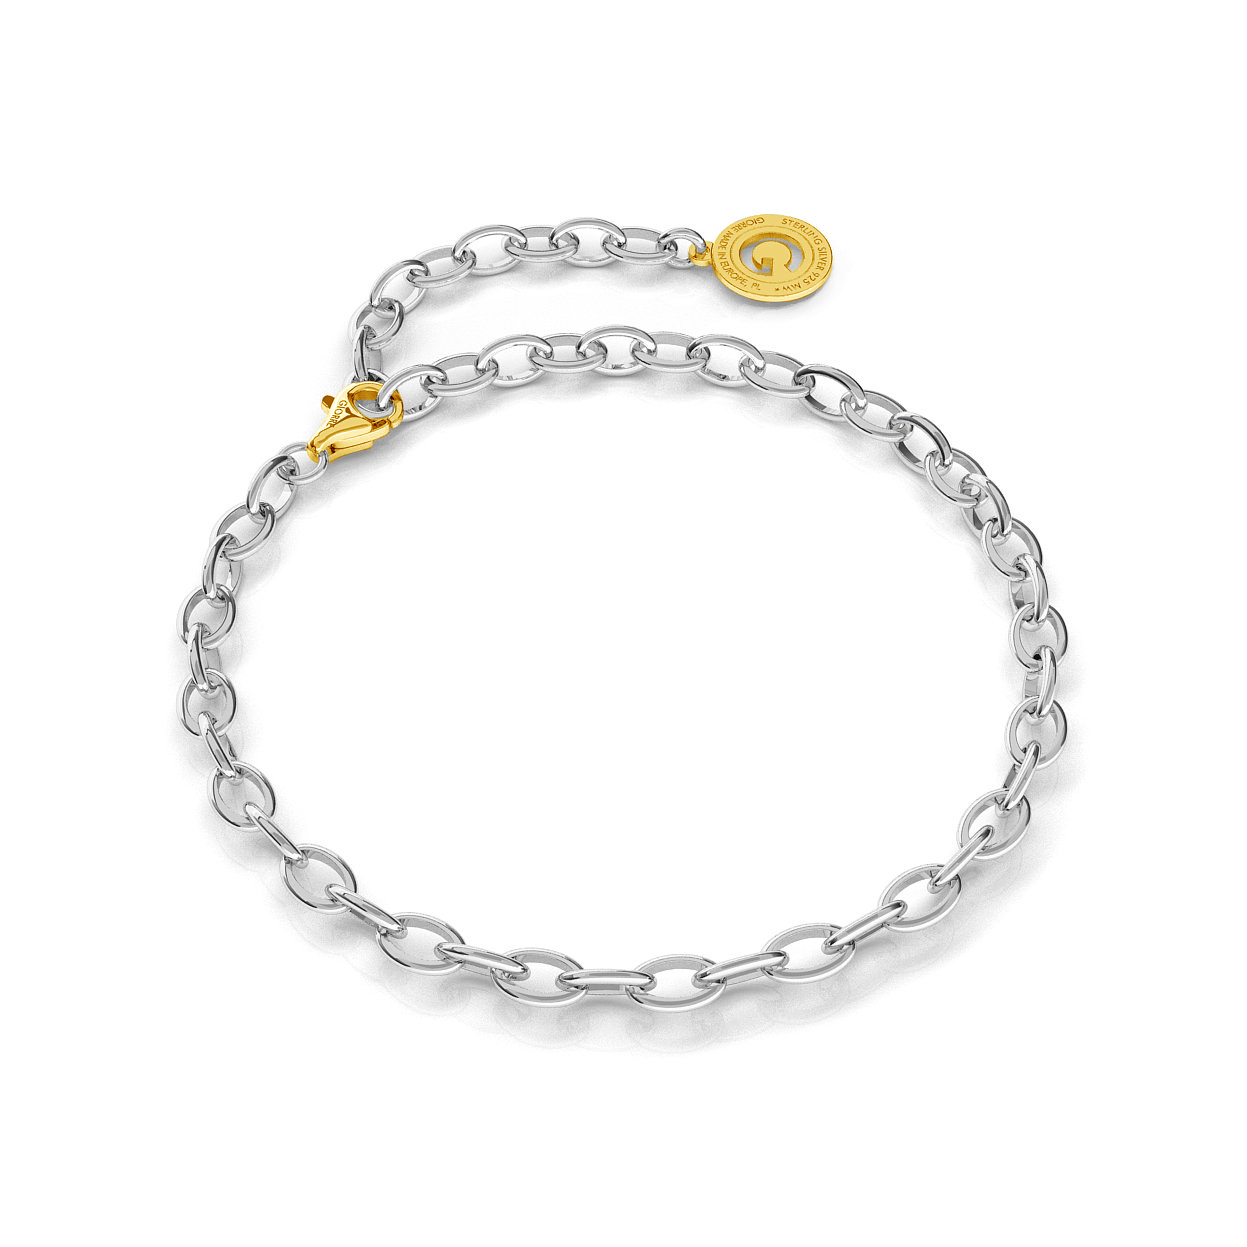 STERLING SILVER BRACELET 16-24 CM LIGHT RHODIUM, YELLOW GOLD CLASP, LINK 6X4 MM